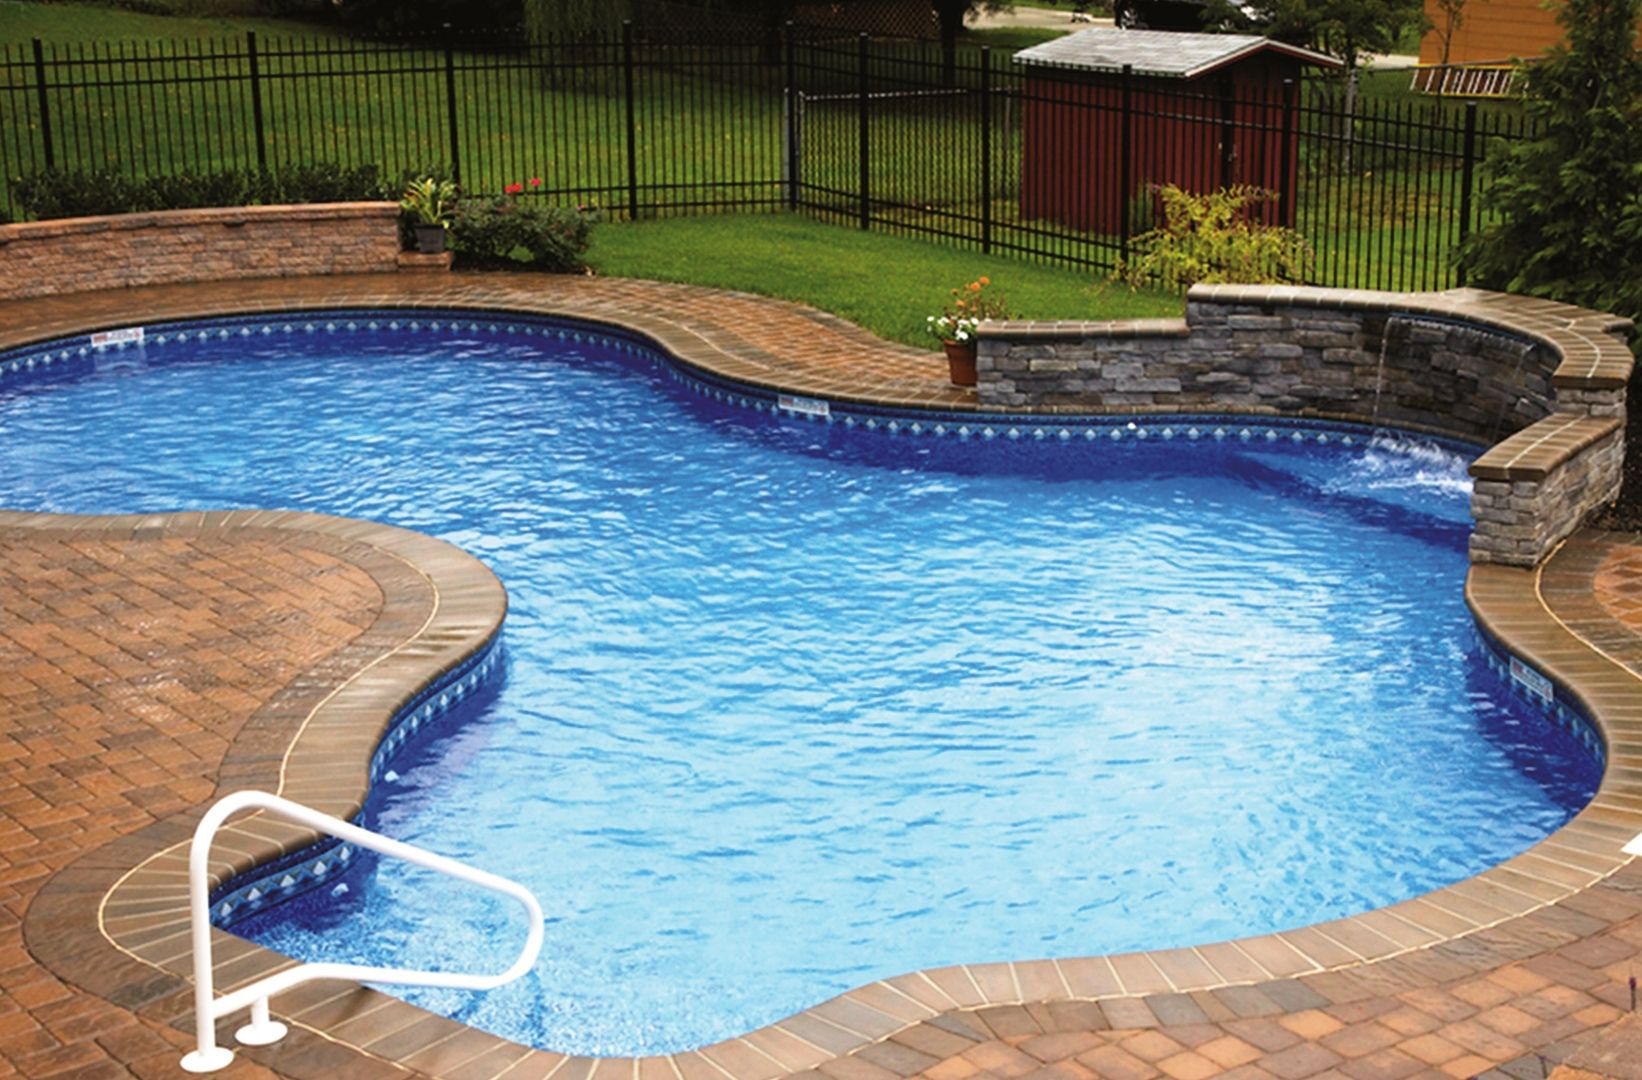 Back yard swimming pool ideas swimming pool design for Back garden swimming pool